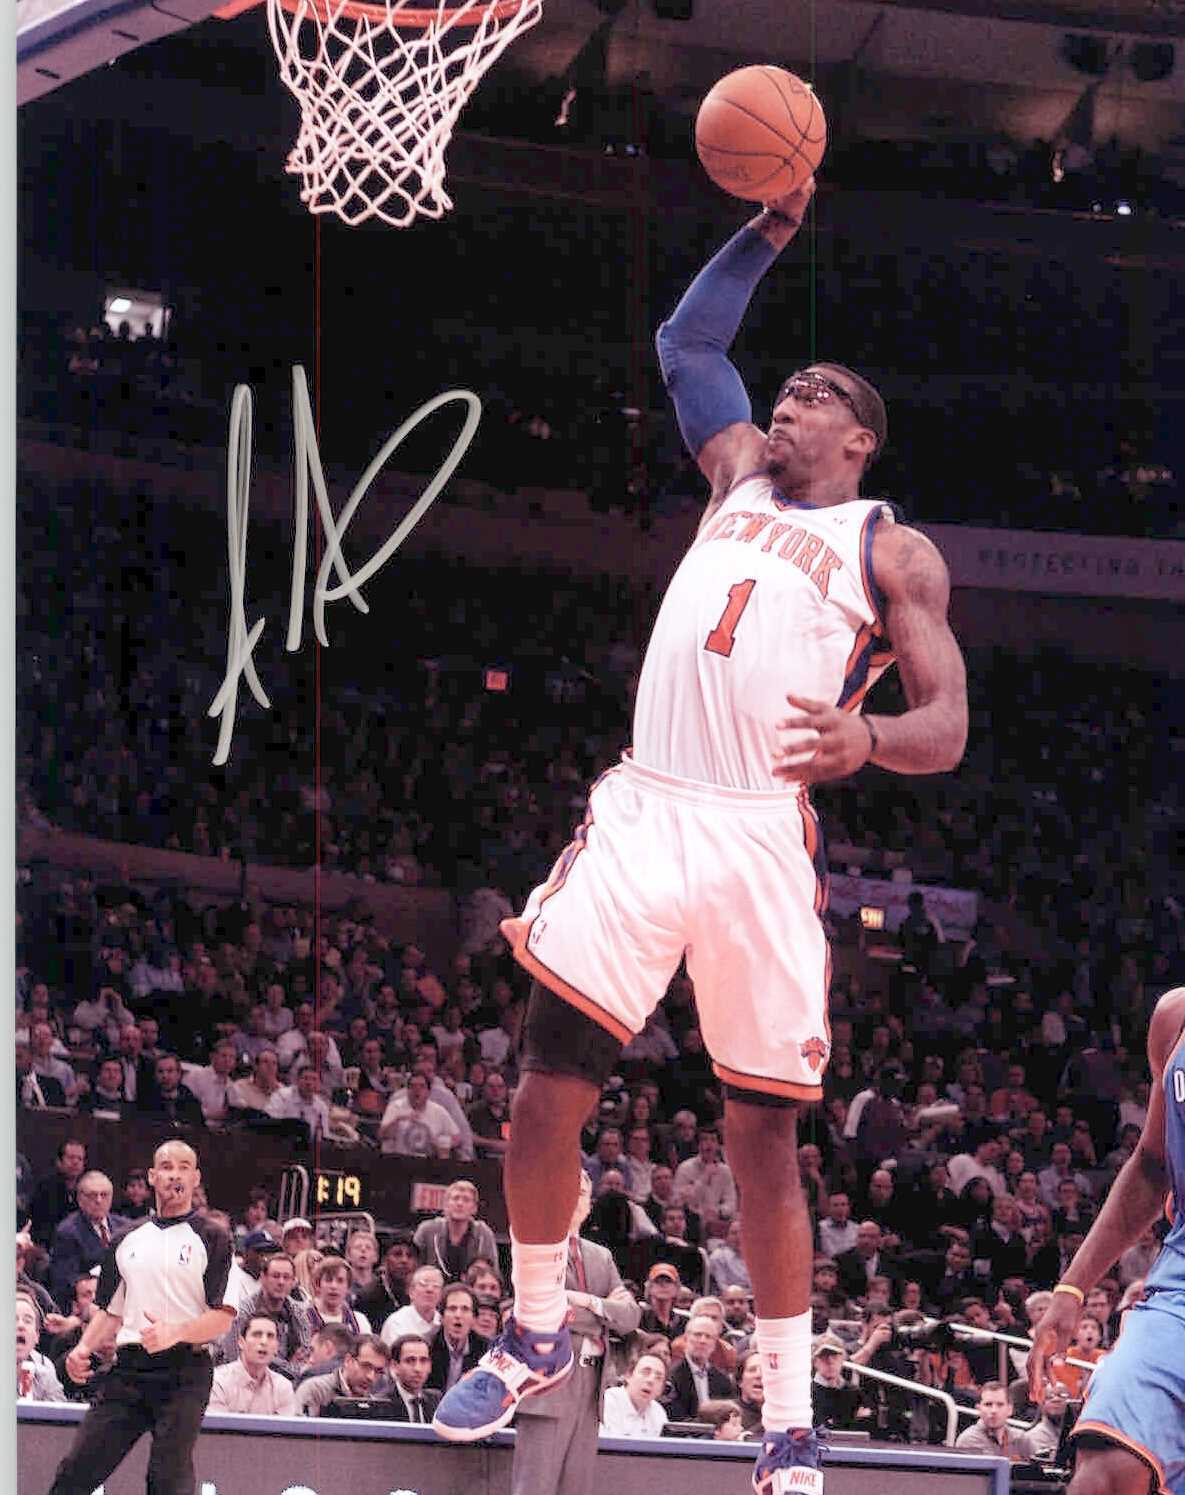 Primary image for Amar'e Stoudemire Signed Autographed Glossy 8x10 Photo - New York Knicks